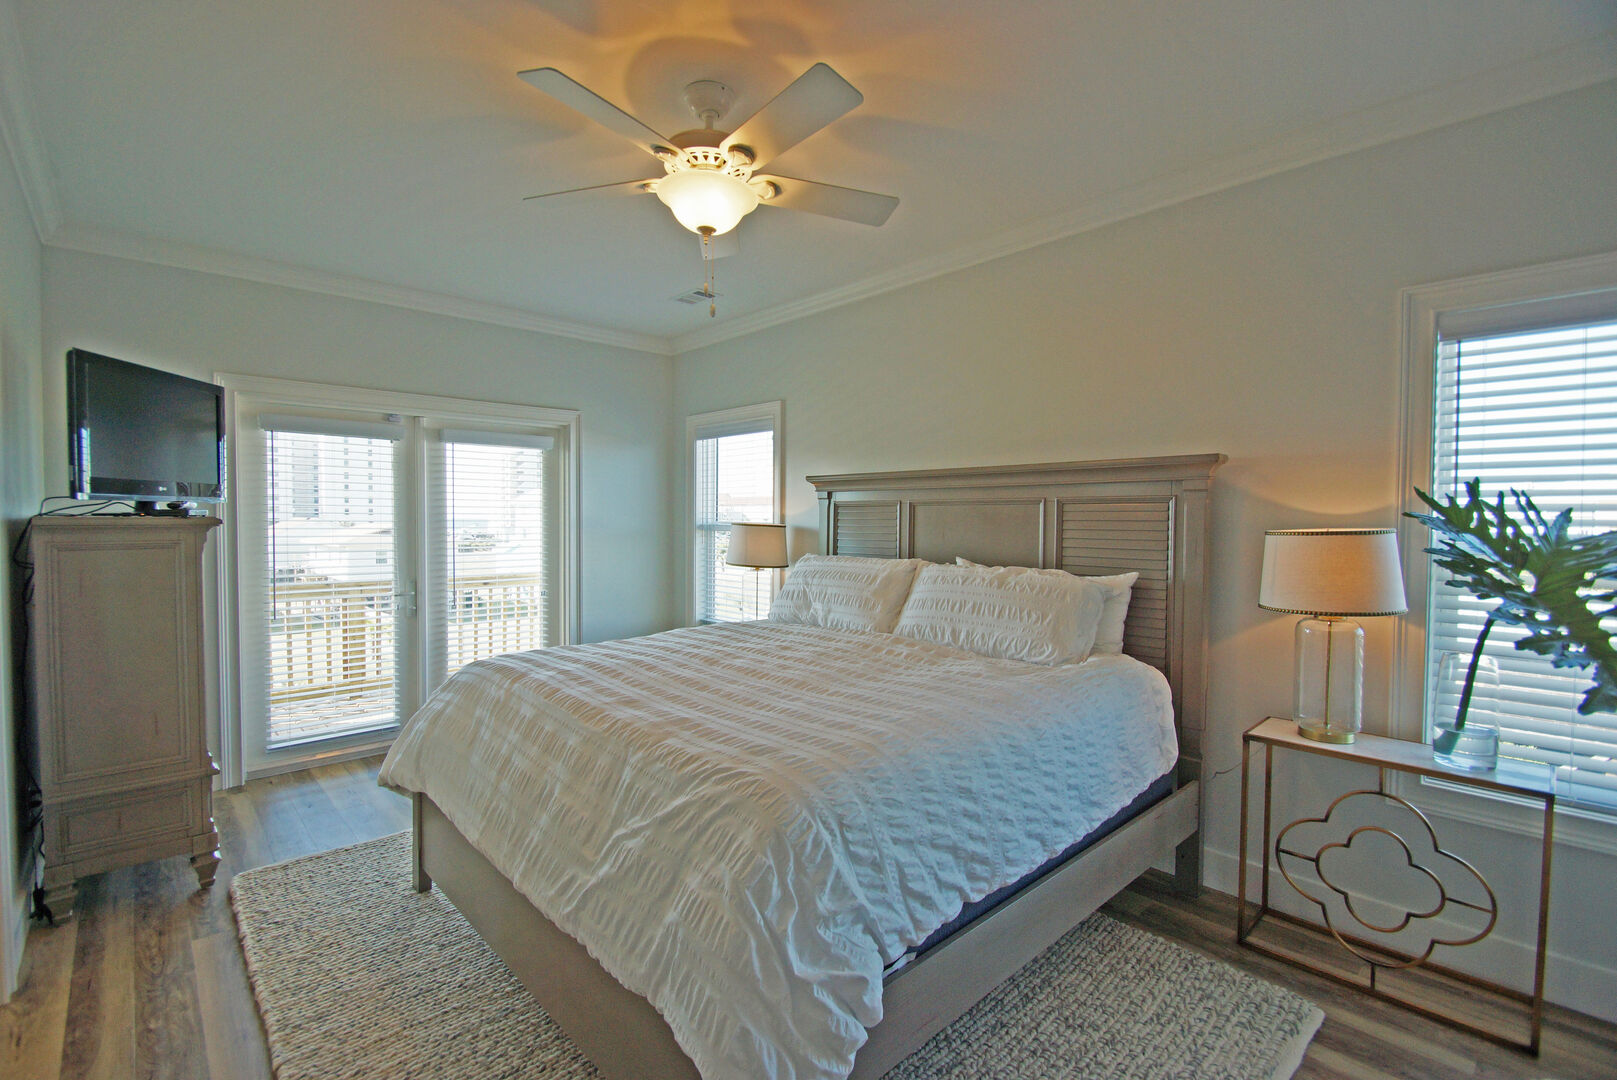 Master Bedroom with King Bed and attached Deck